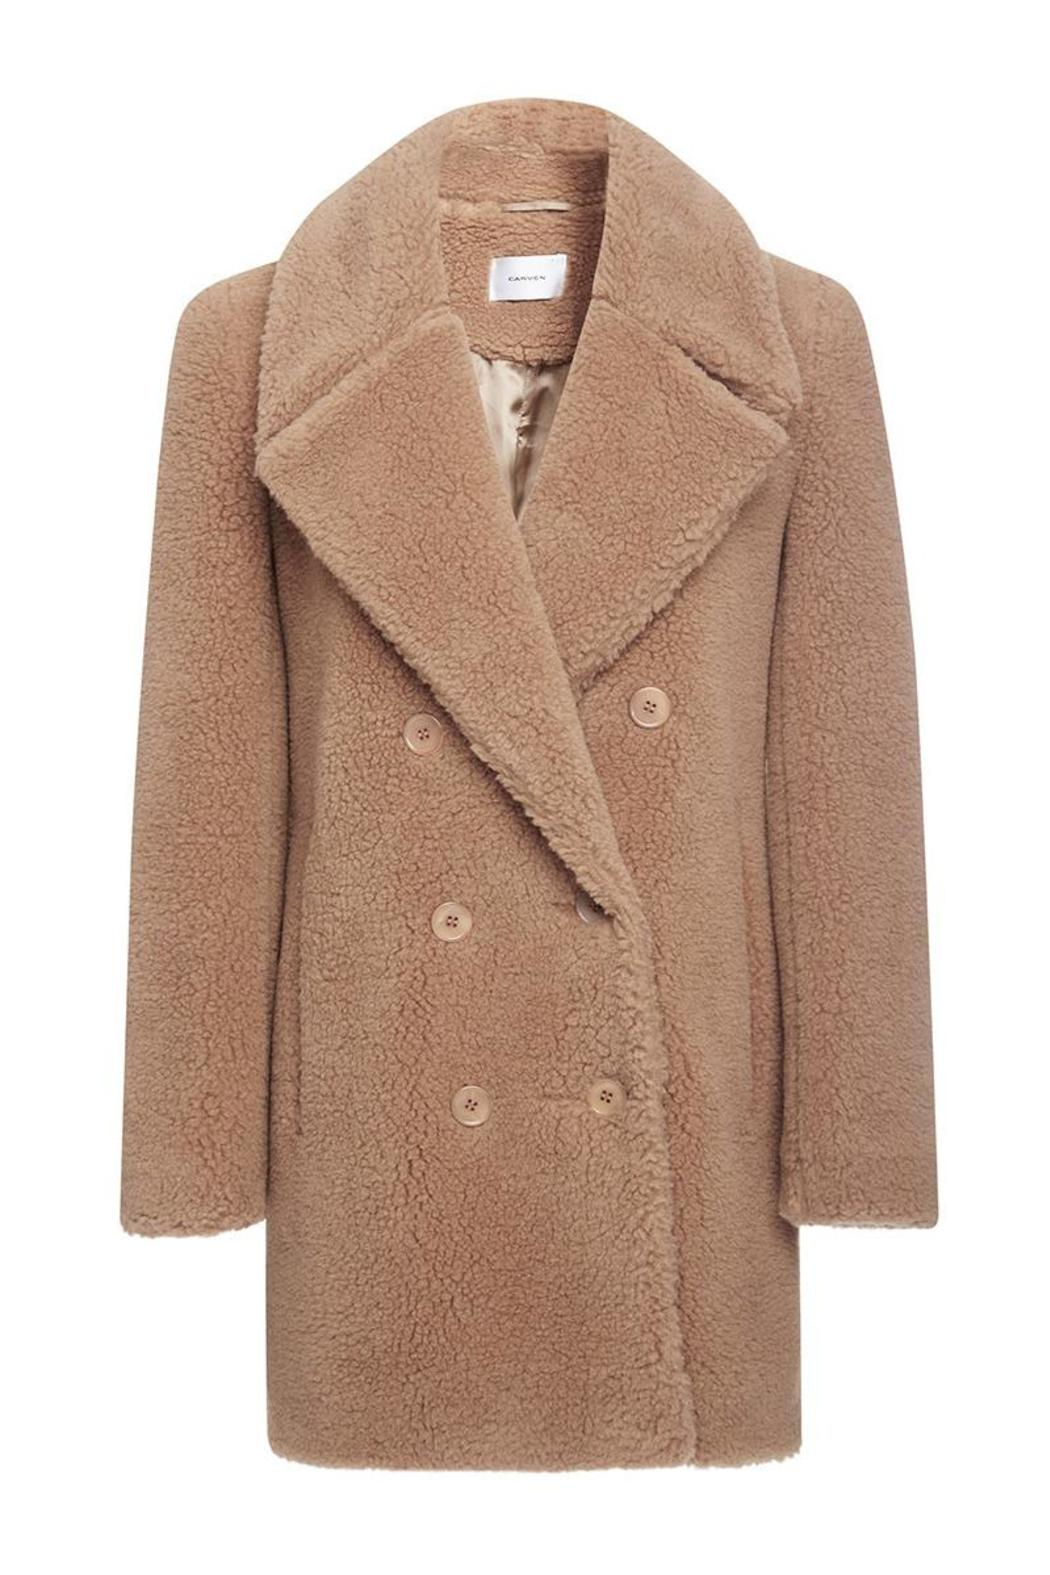 Carven Teddy Bear Peacoat From West Loop By Another 20